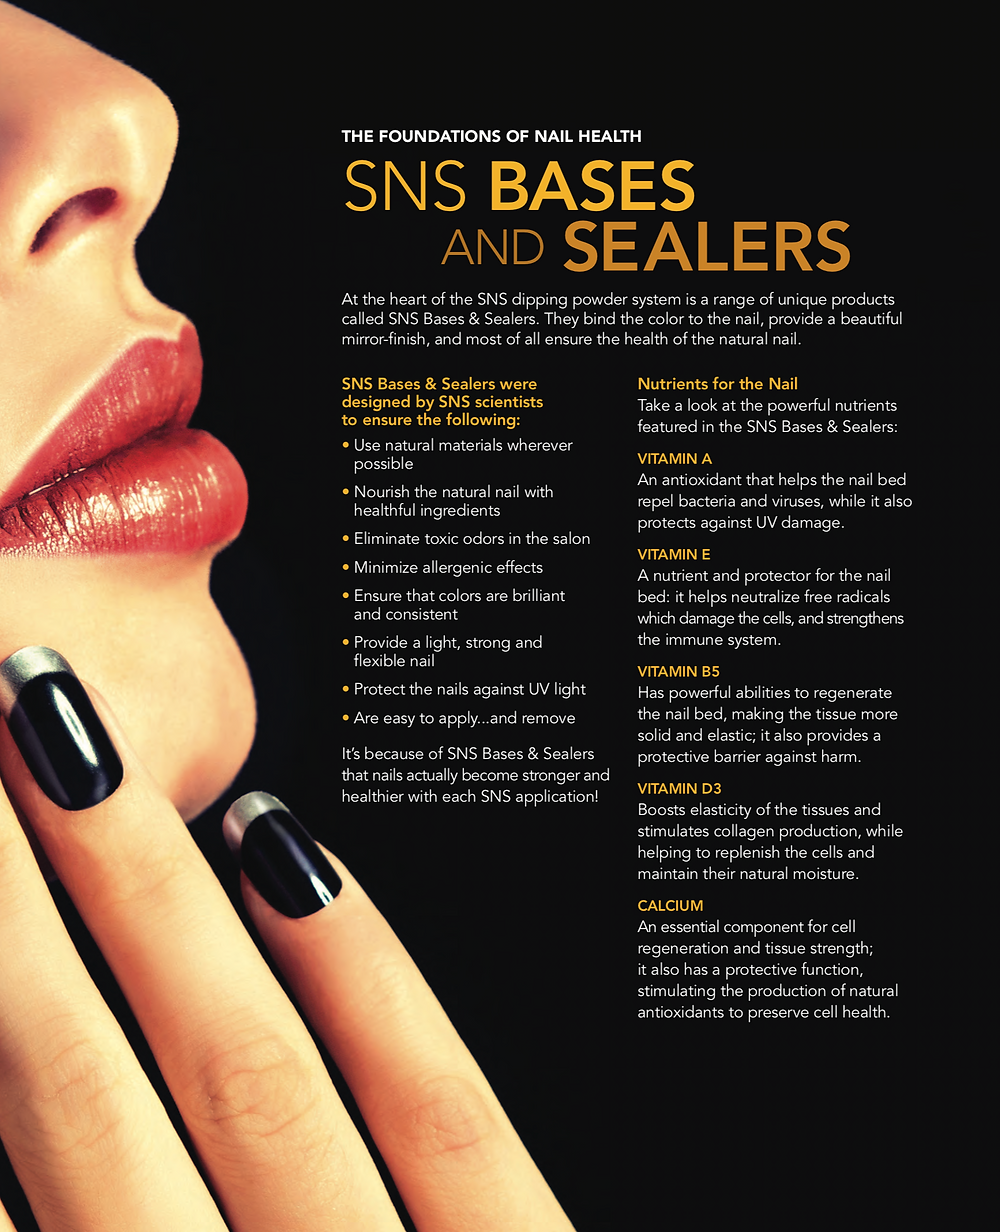 SNS BASES AND SEALERS